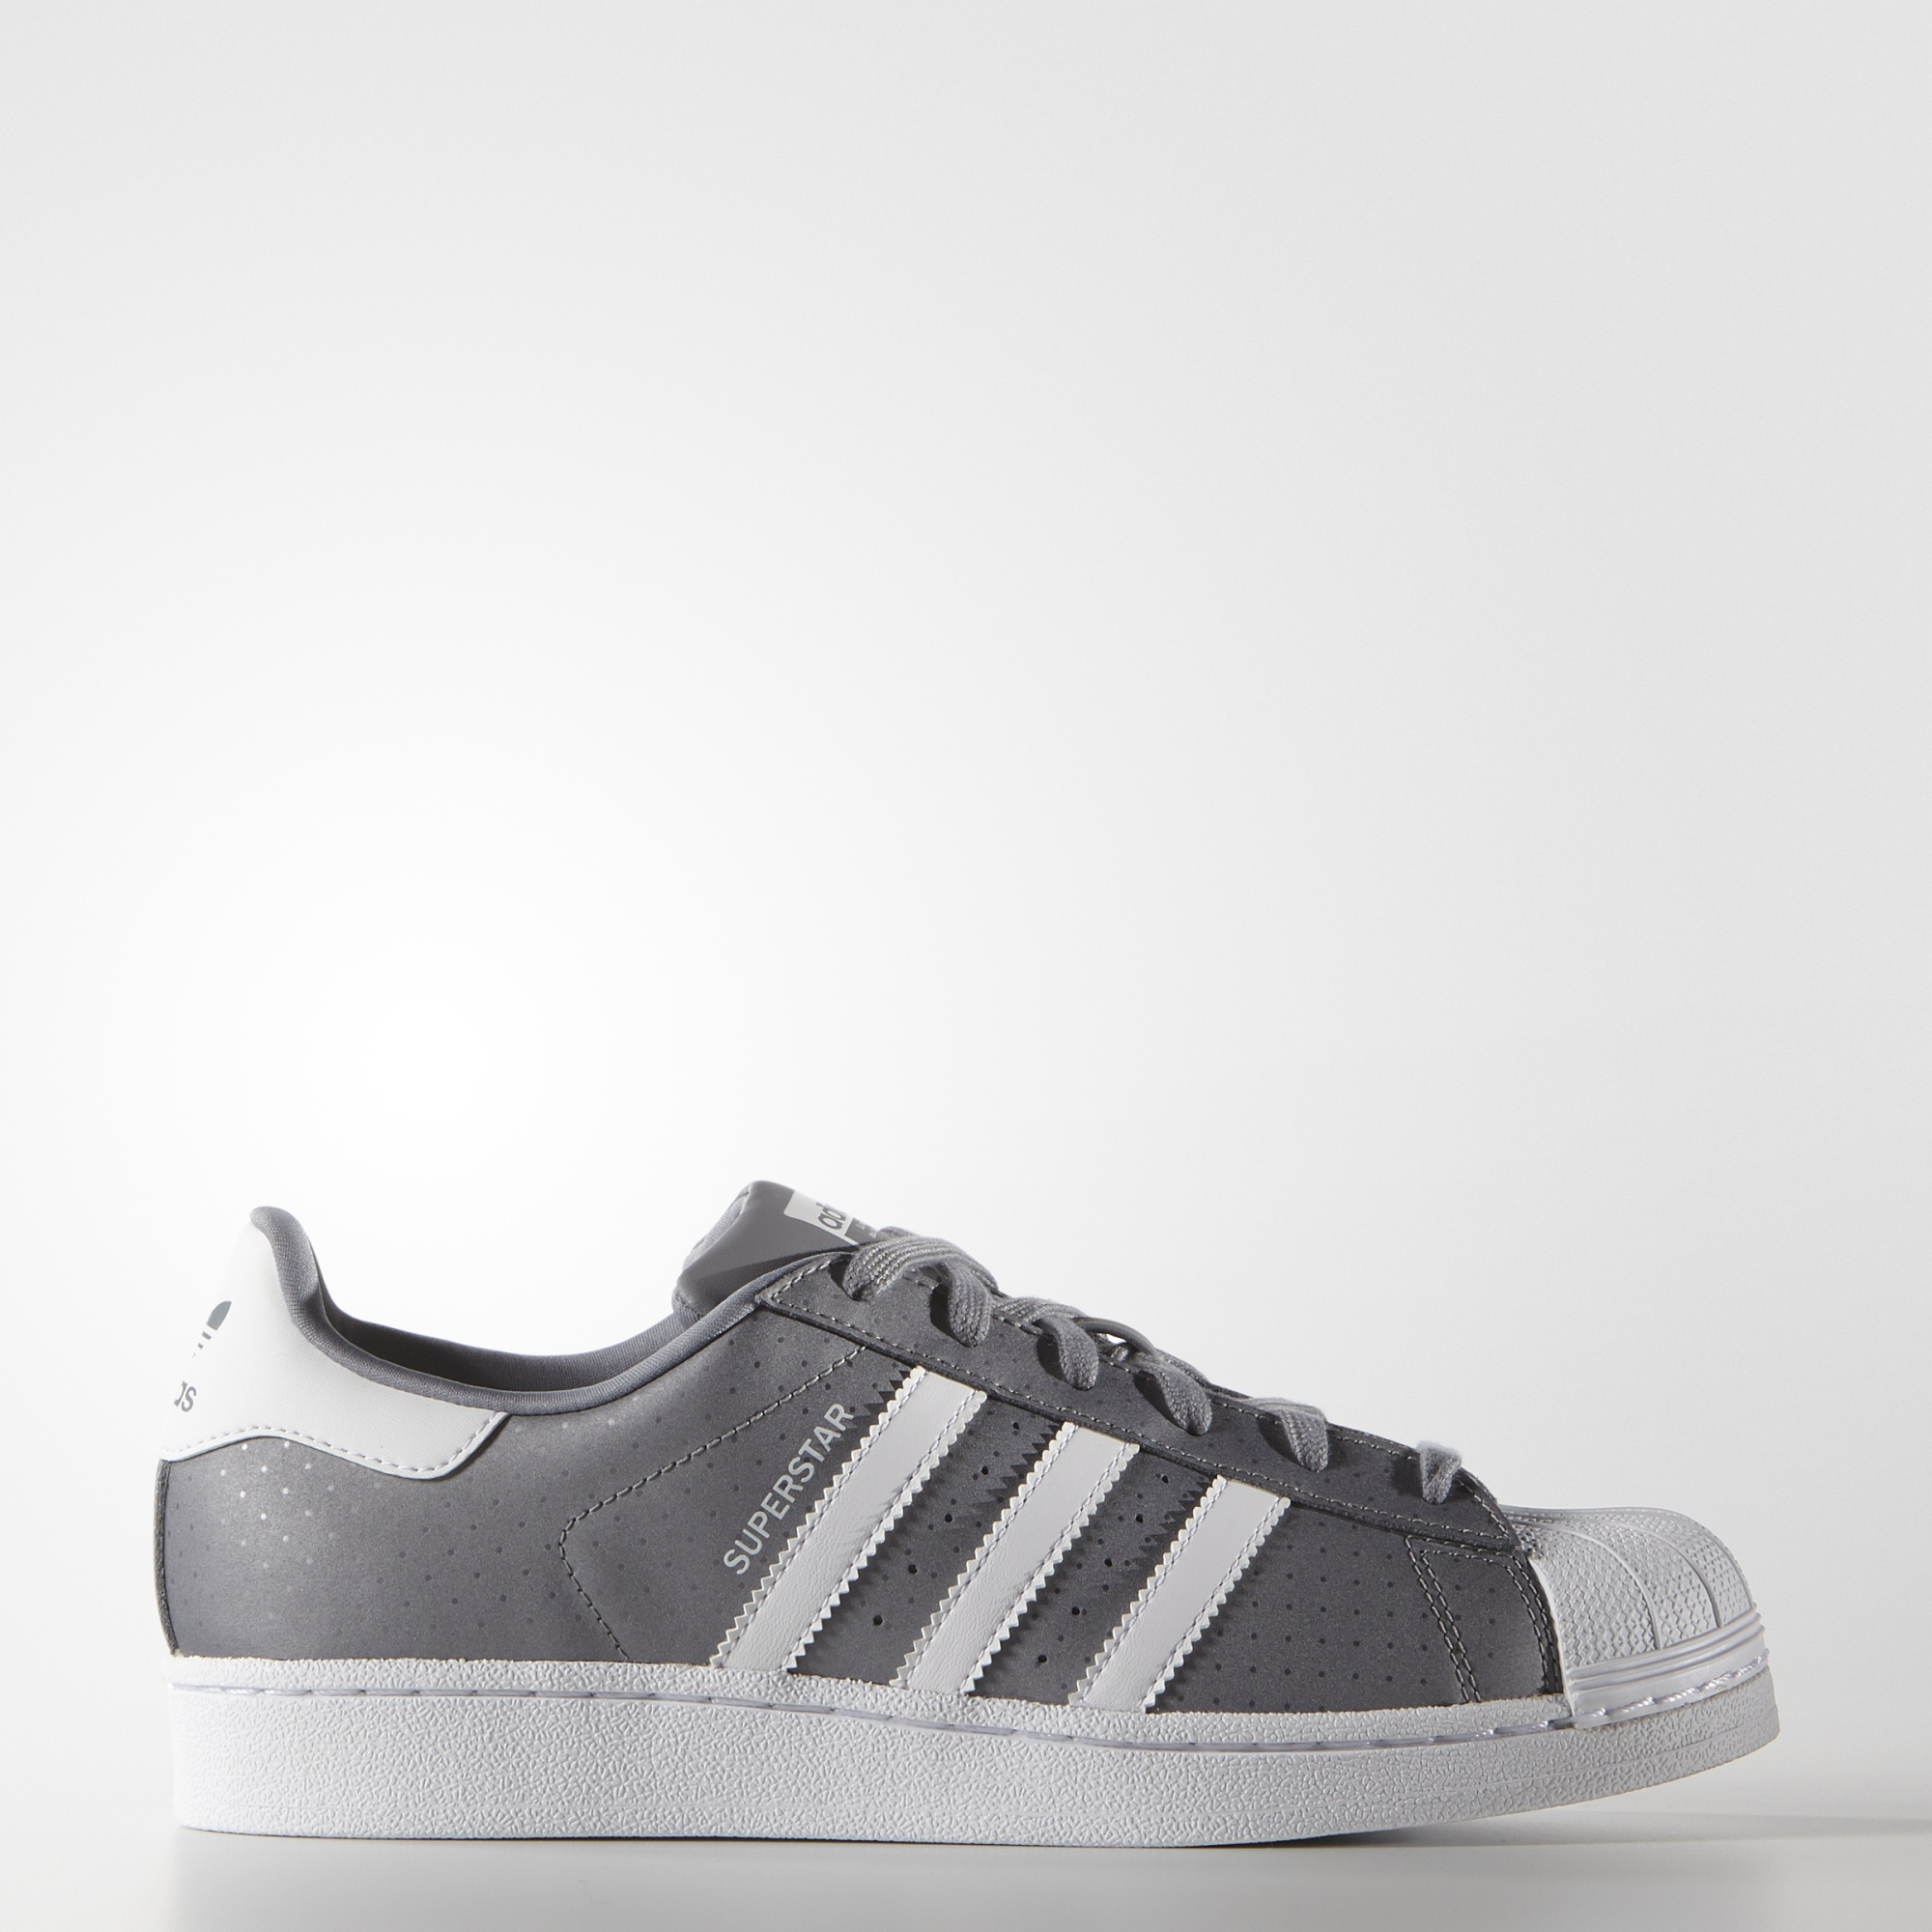 adidas superstar shoes grey